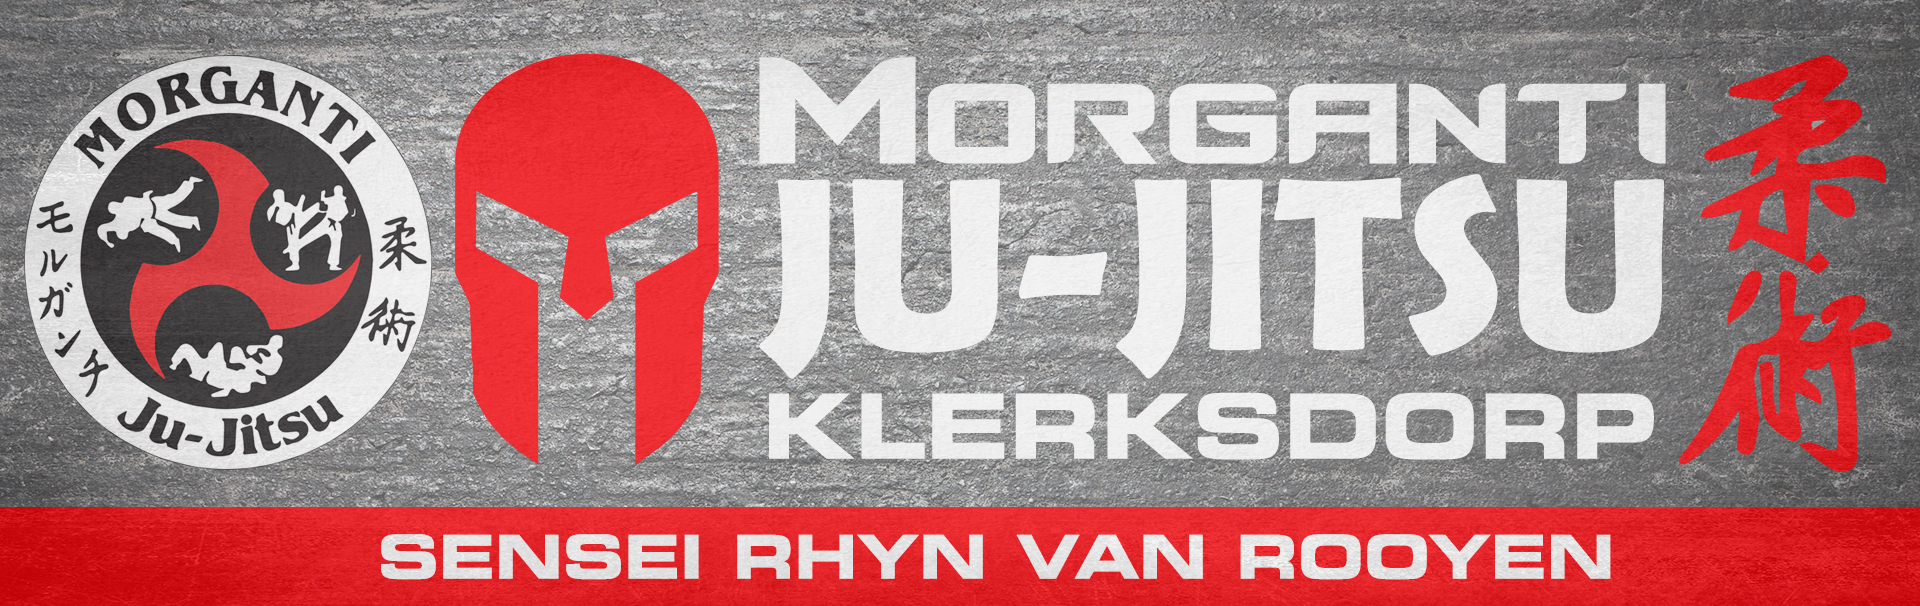 MJJ Competition Klerksdorp May 2017 | Morganti Ju-Jitsu Klerksdorp